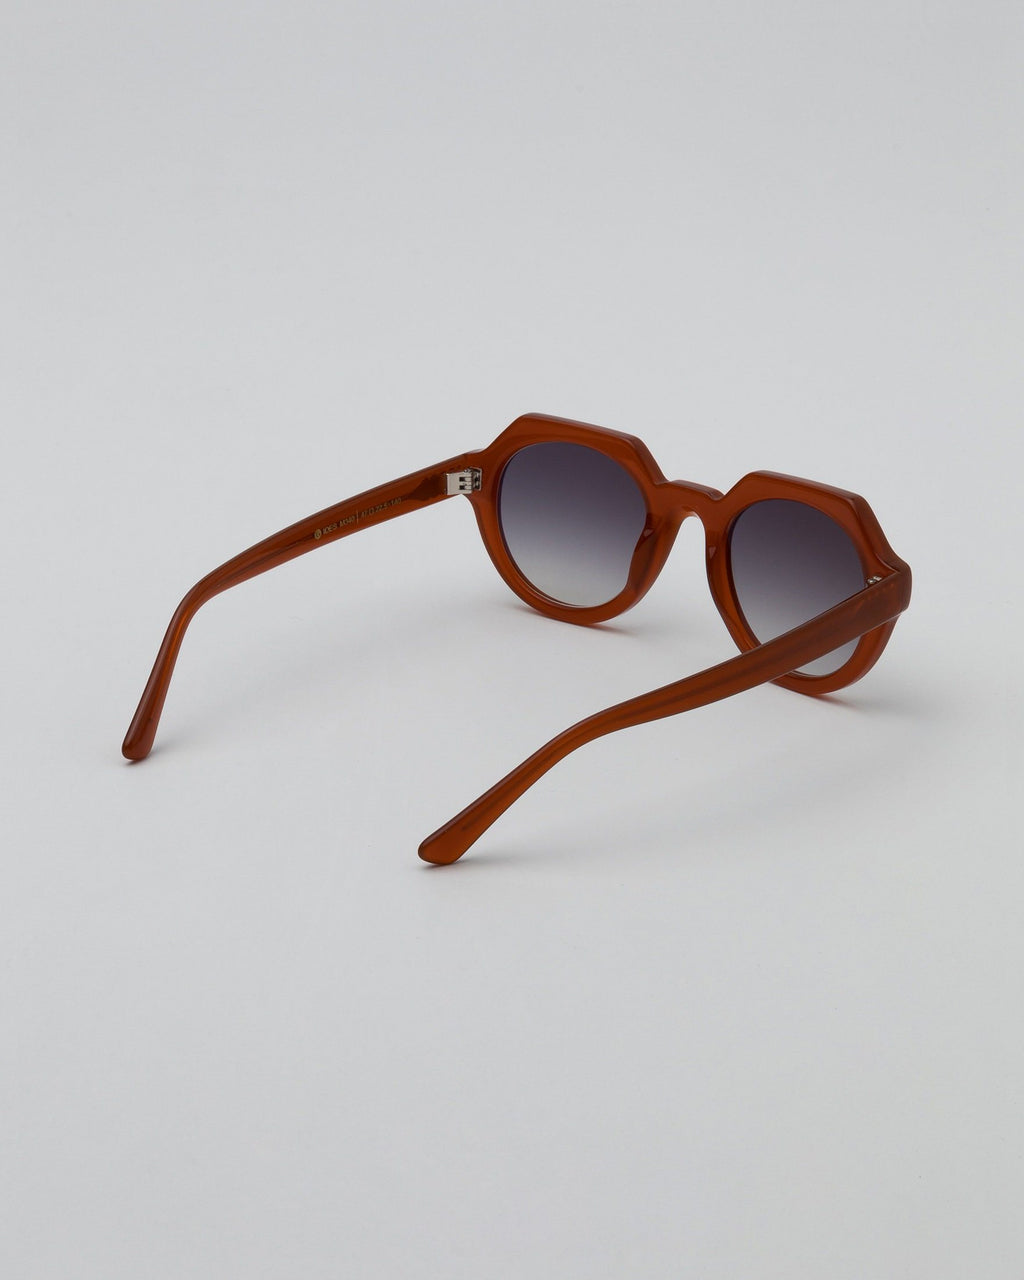 variant_1 | EN Sunglasses Brown Orange Unisex GOBI | DE Sonnenbrille Brown Orange Unisex GOBI